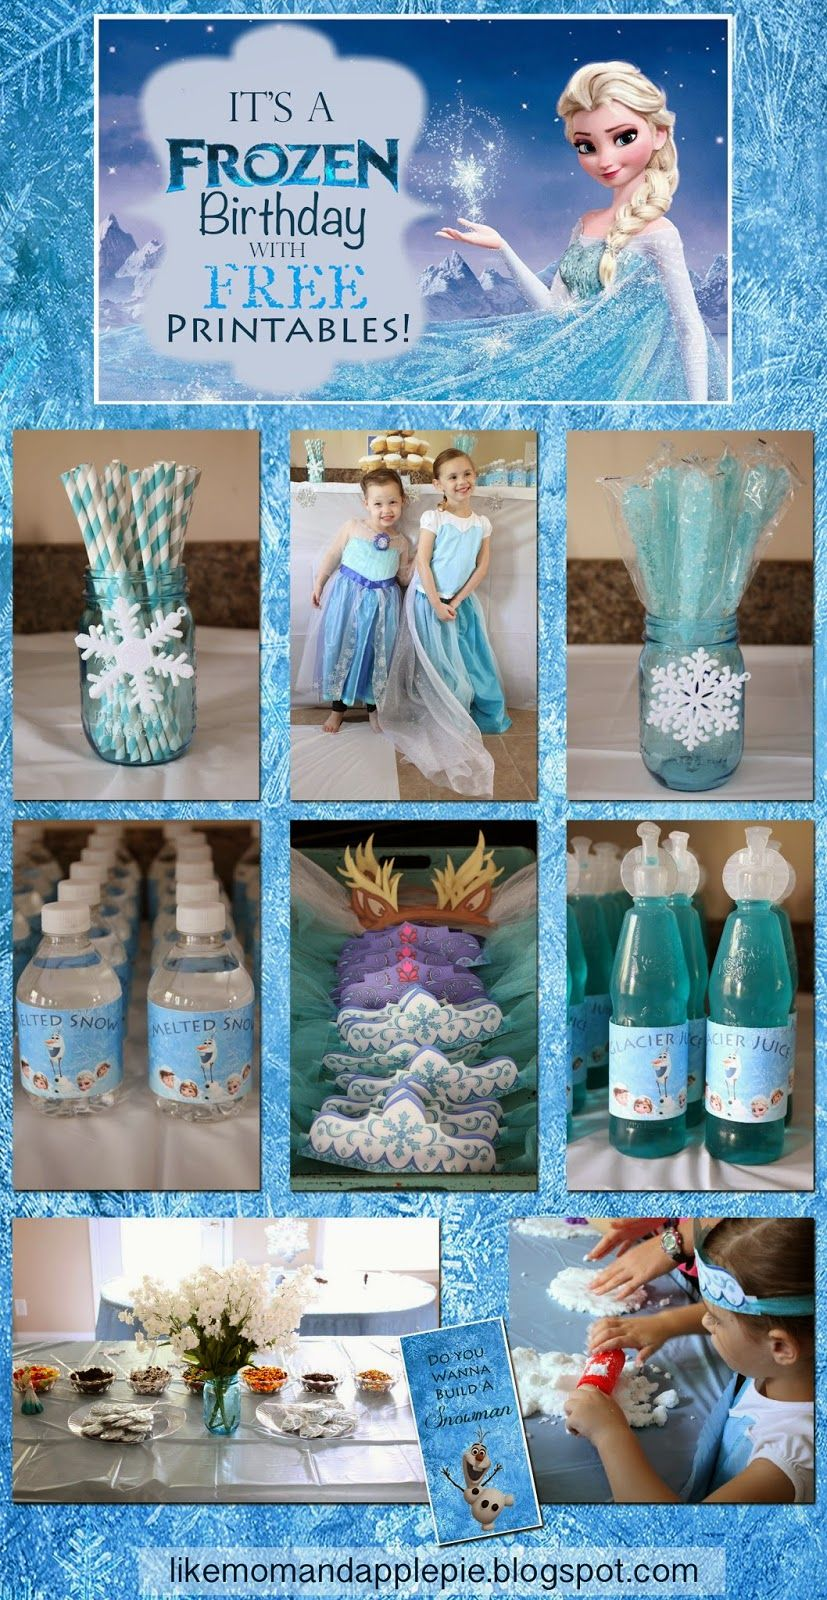 LMAAP_Frozen_Party_Free_Printables_FrozenBirthdayParty_Storyboard.jpg 827×1 600 pikseliä